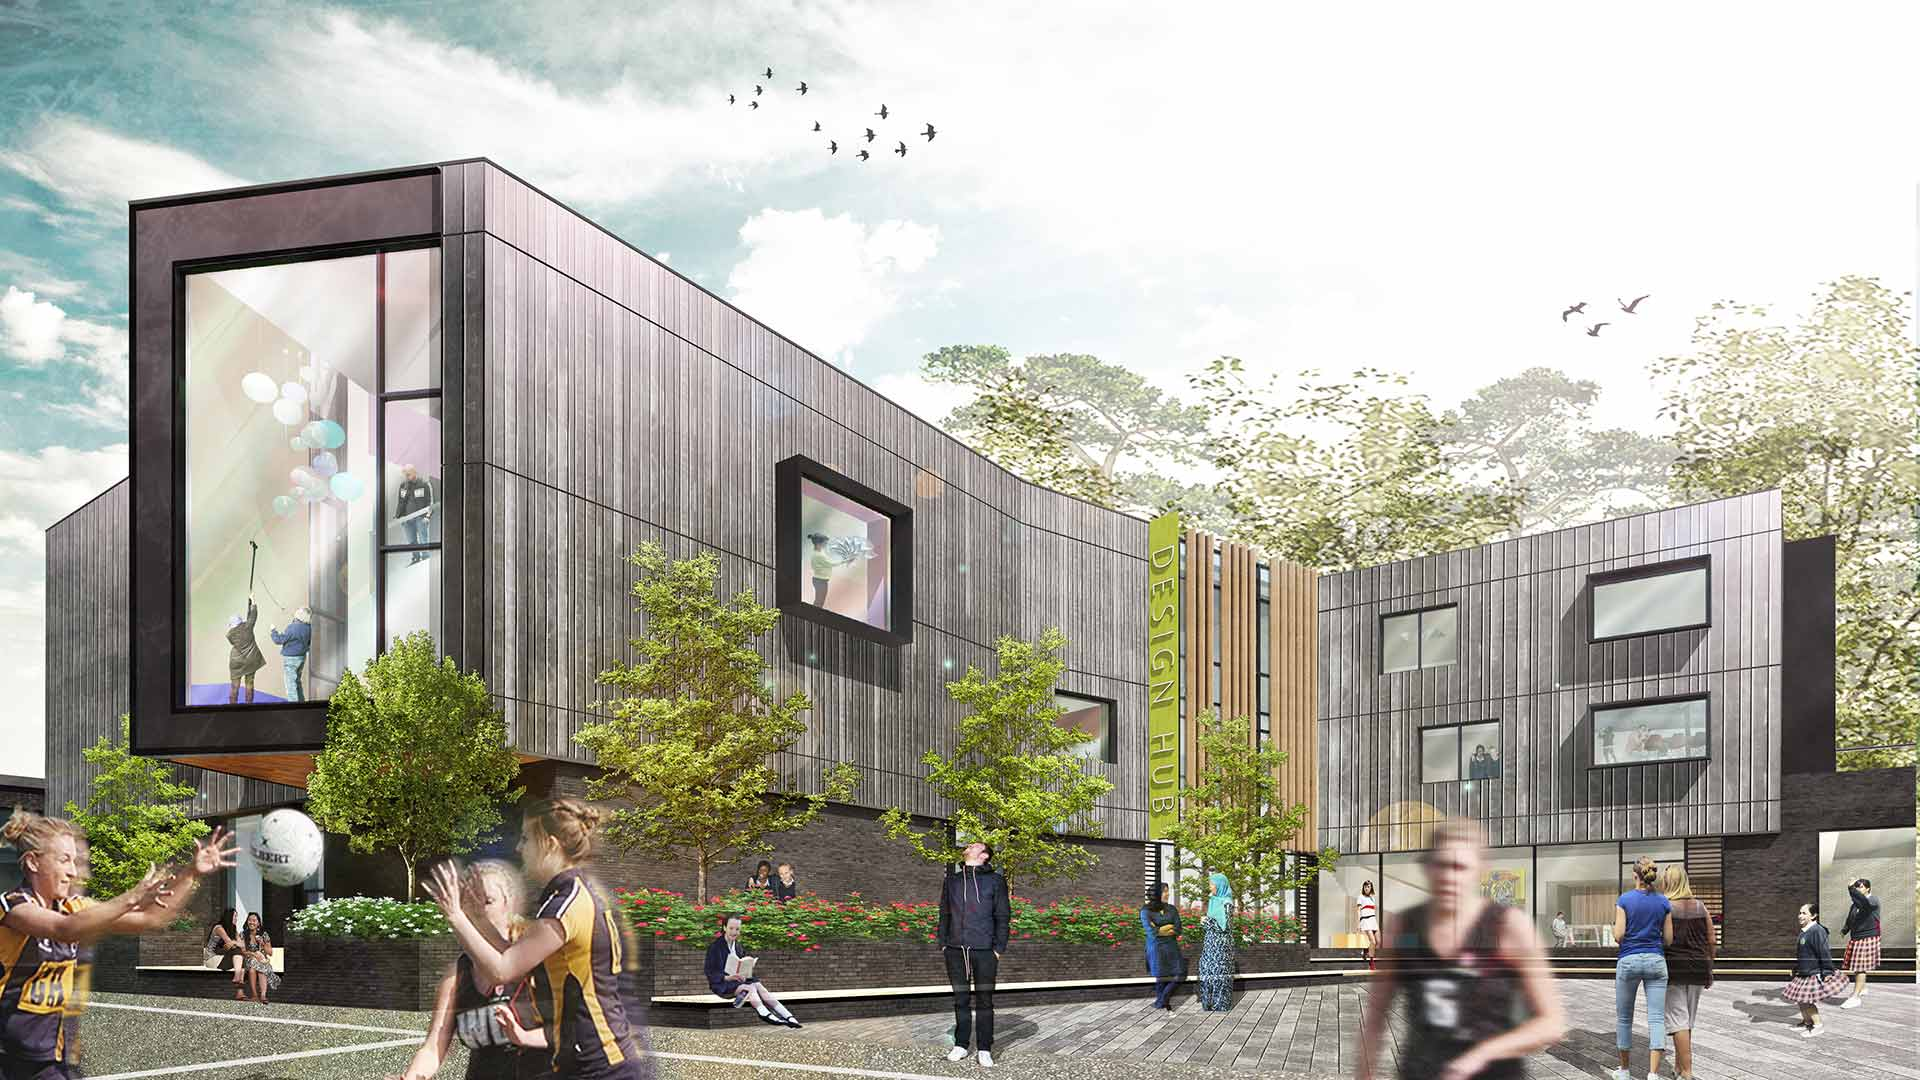 Talbot school building design bournemouth western - College of design construction and planning ...